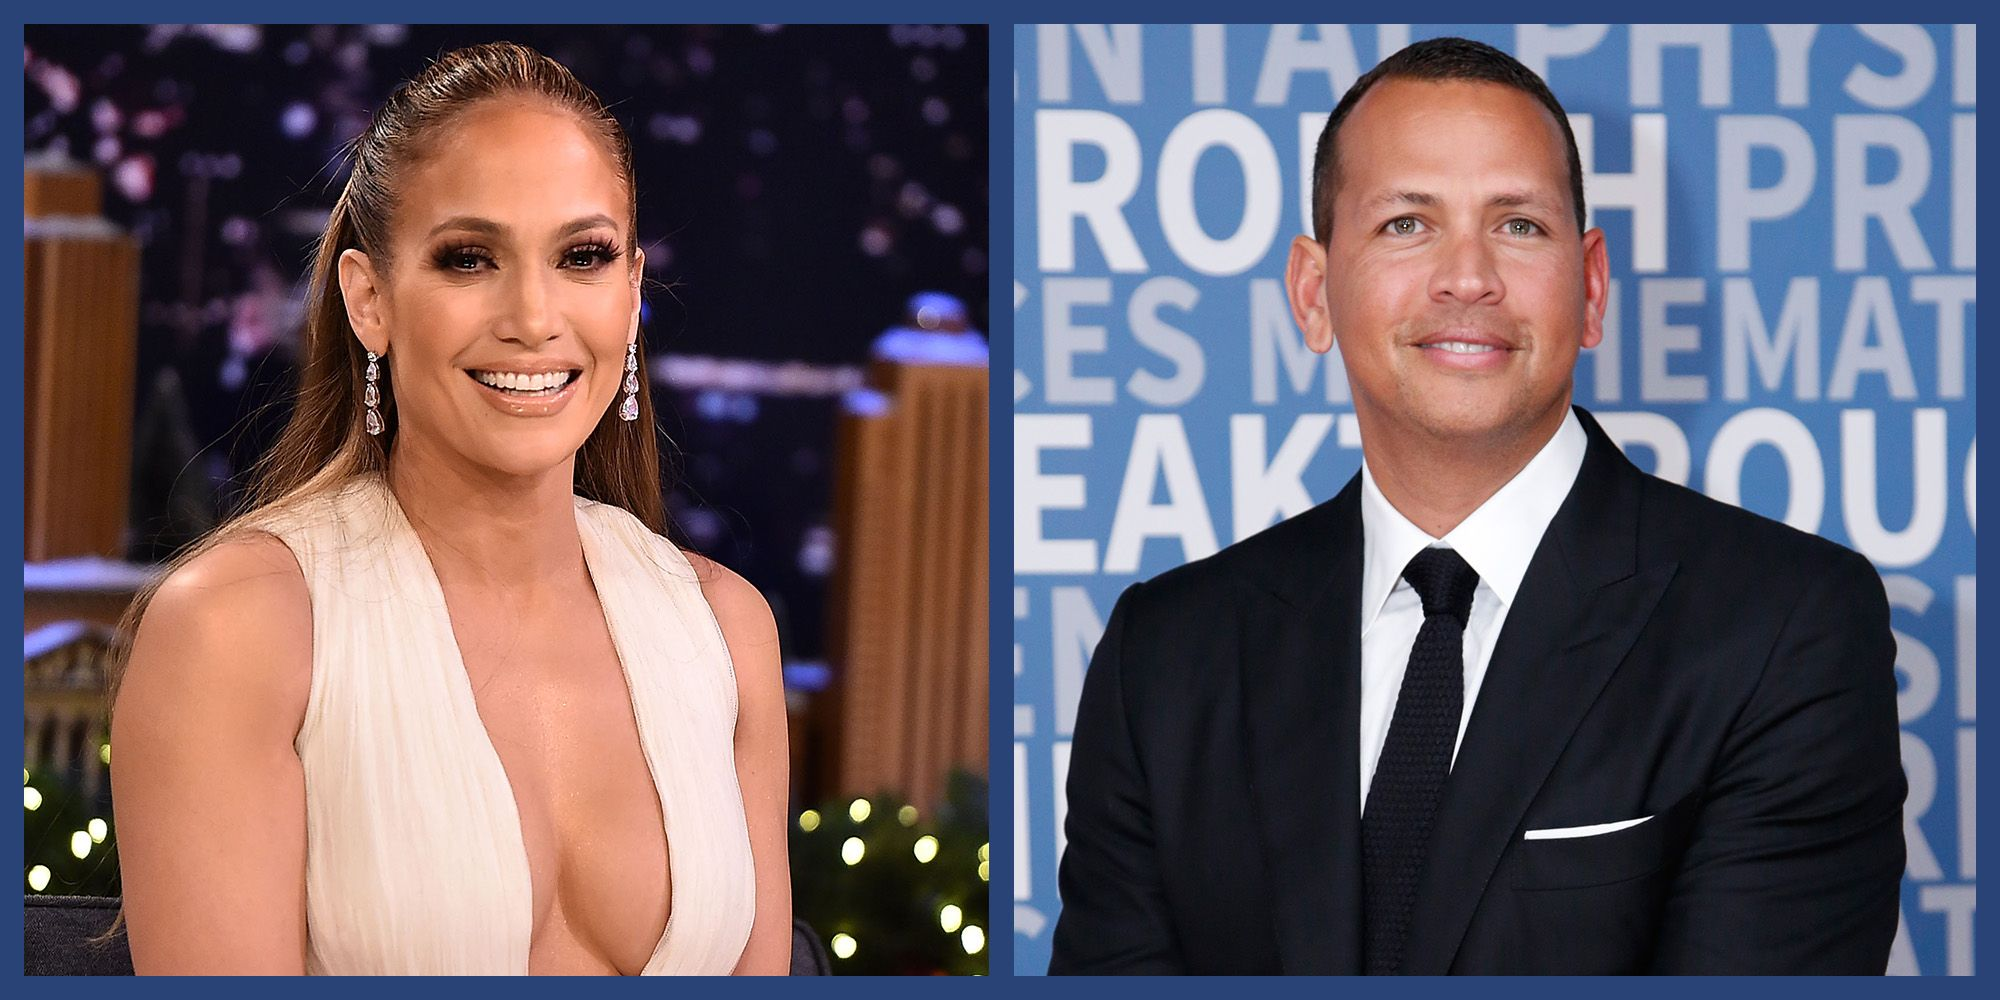 Alex Rodriguez Wore His 2009 World Series Championship Ring to Propose to Jennifer Lopez